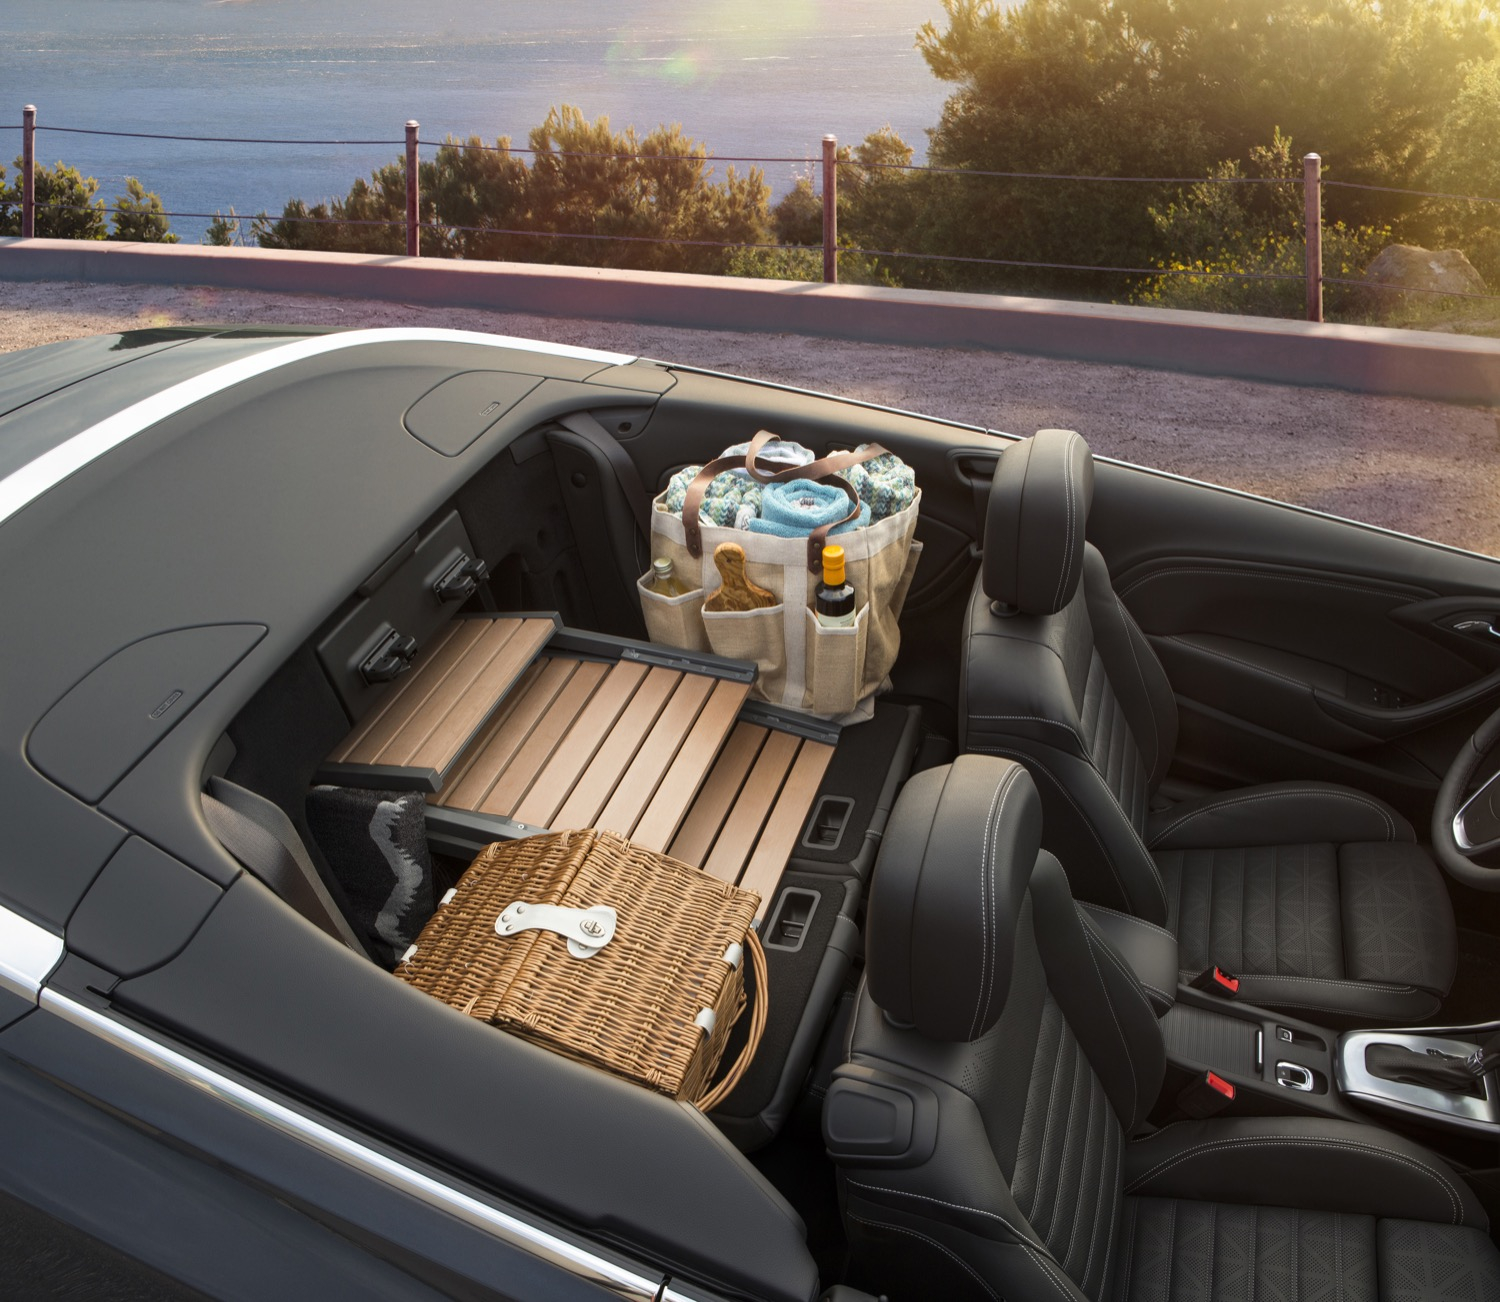 Buick Cascada To Be Axed With Opel Version? | Gm Authority New 2022 Buick Cascada Specs, Owners Manual, Accessories